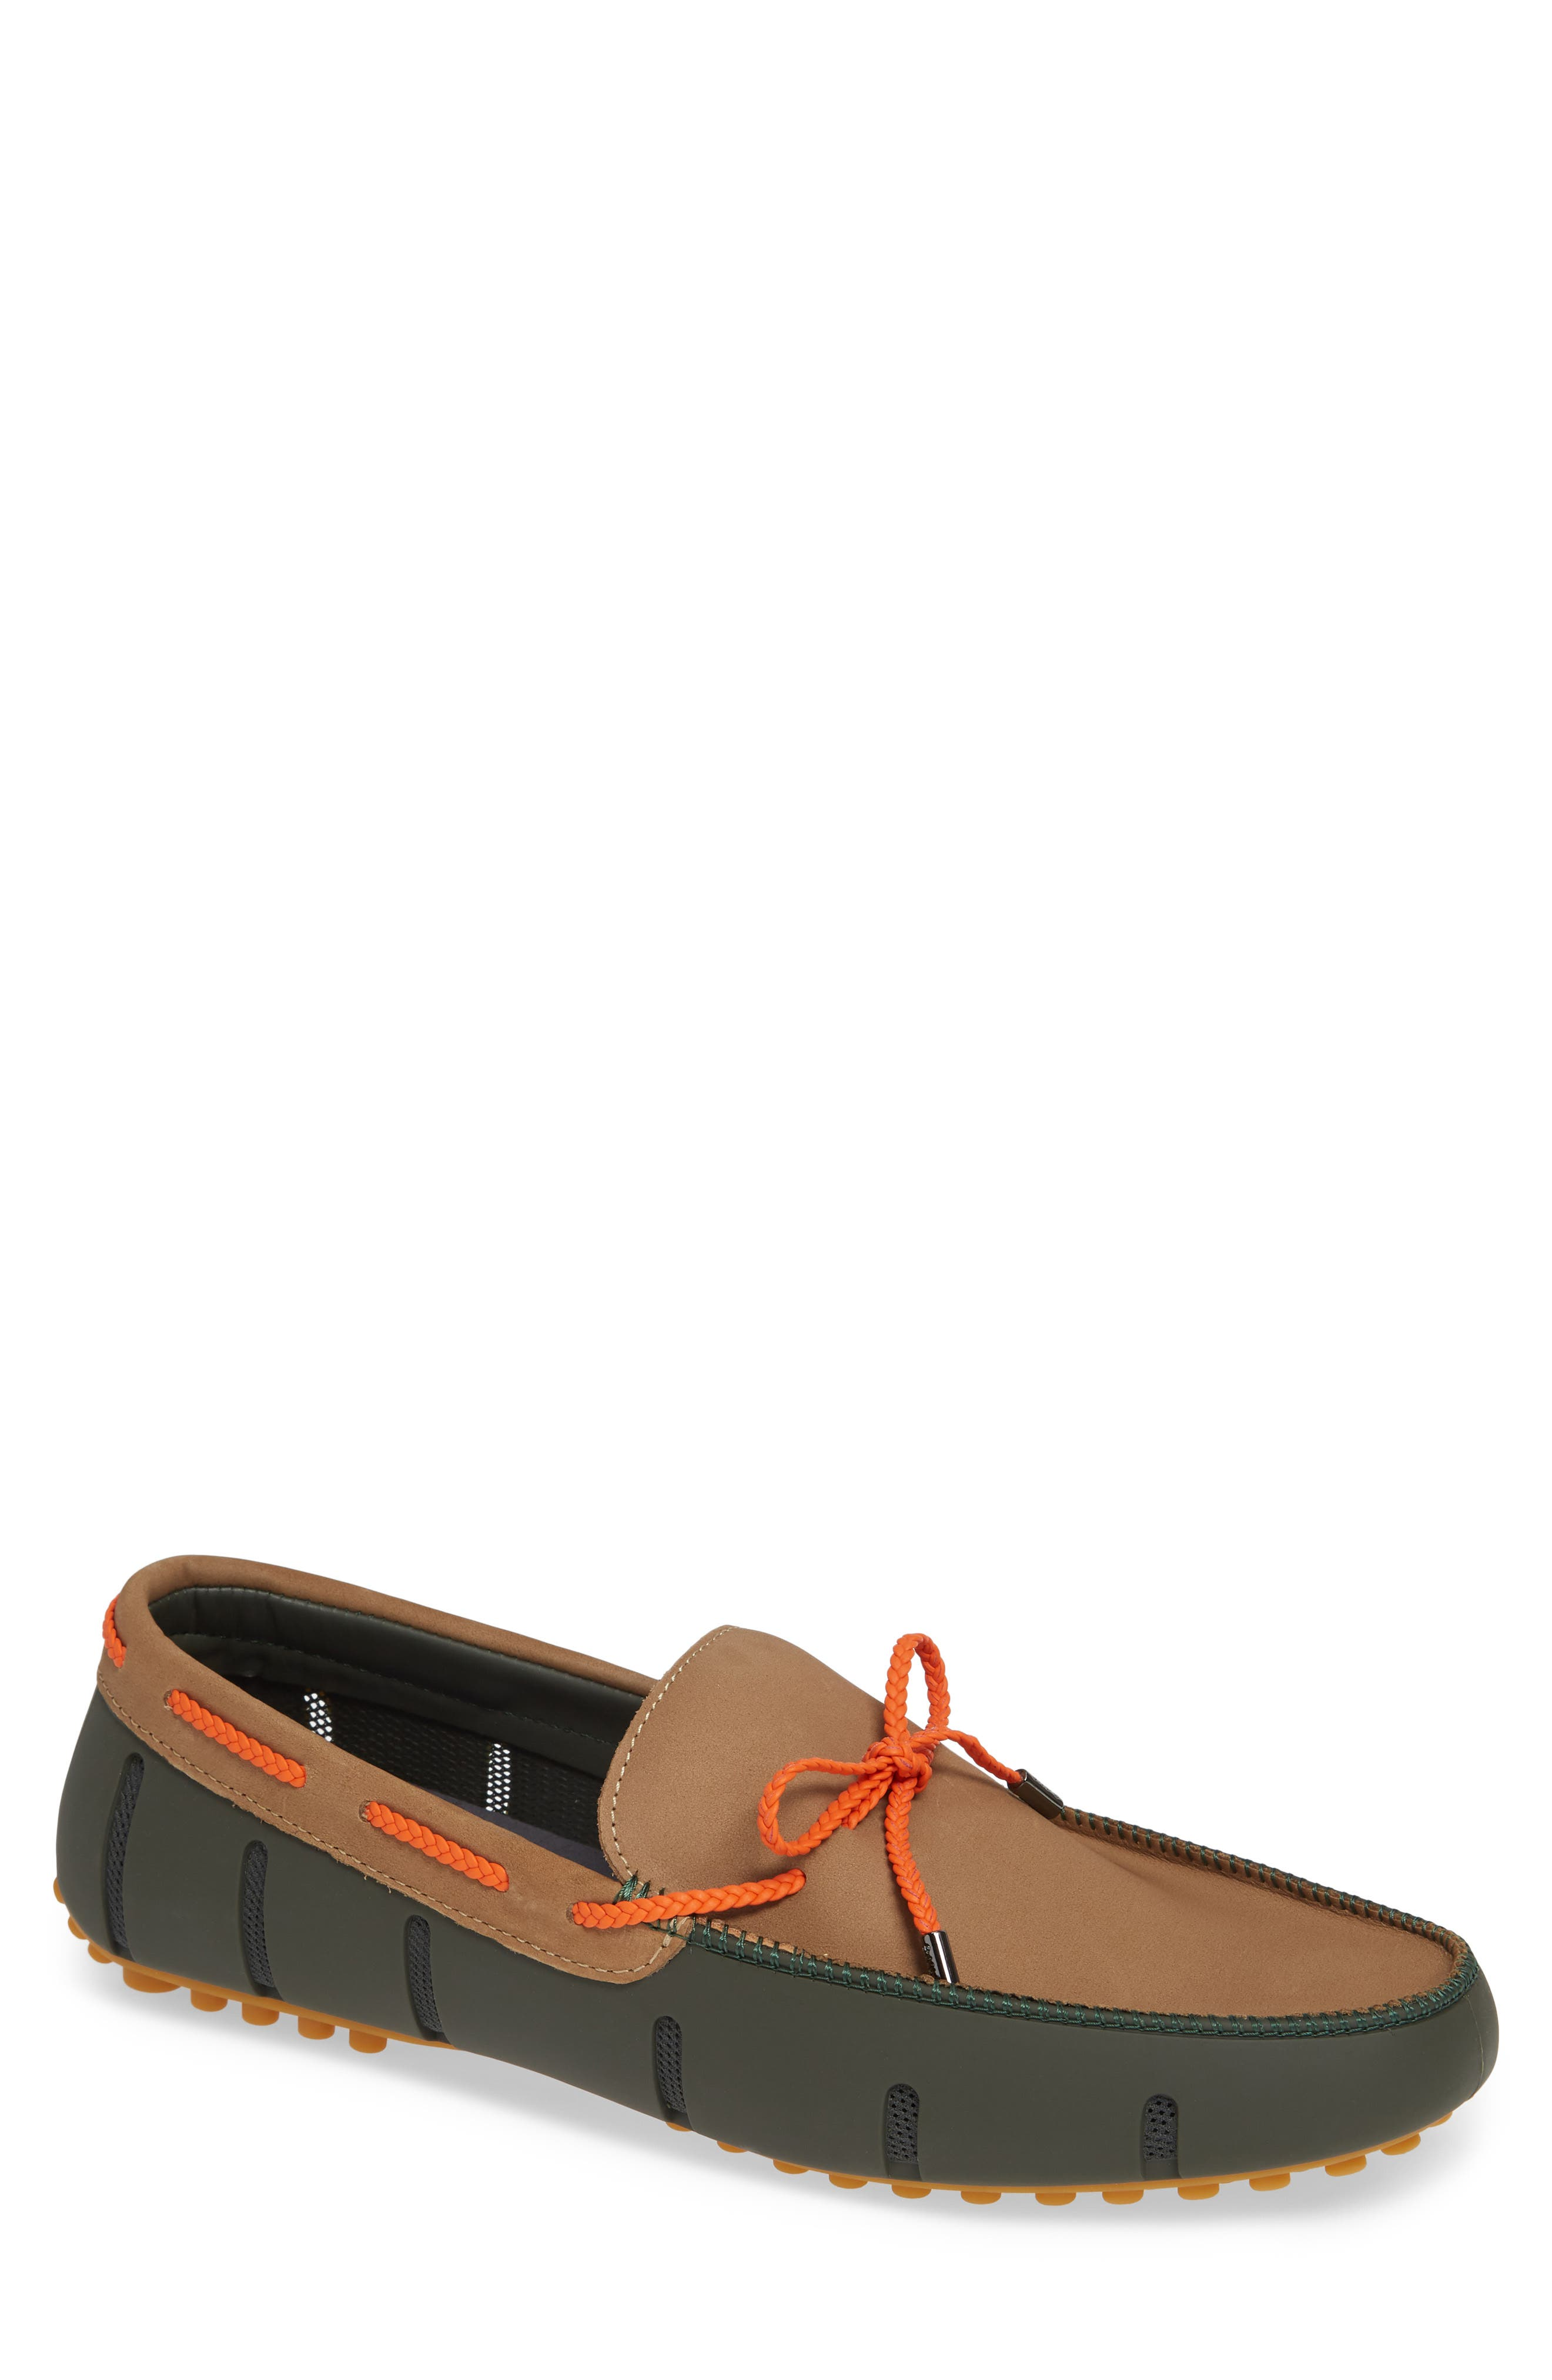 SWIMS Lux Driving Loafer, Main, color, OLIVE/ GAUCHO/ GUM